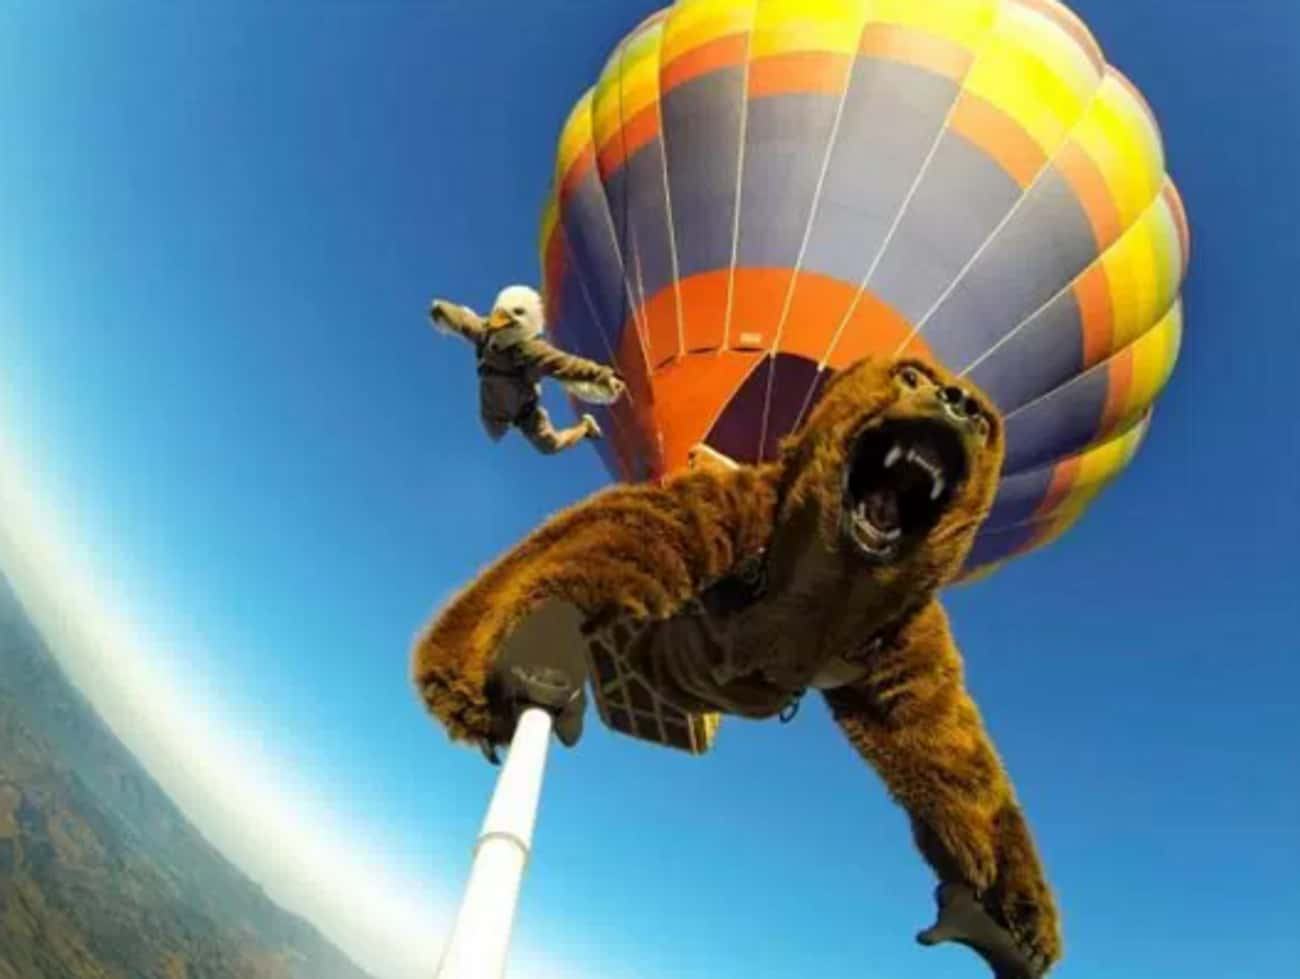 Skydiving Selfie Stick: Bear E is listed (or ranked) 4 on the list The 16 Funniest Photos in Skydiving History